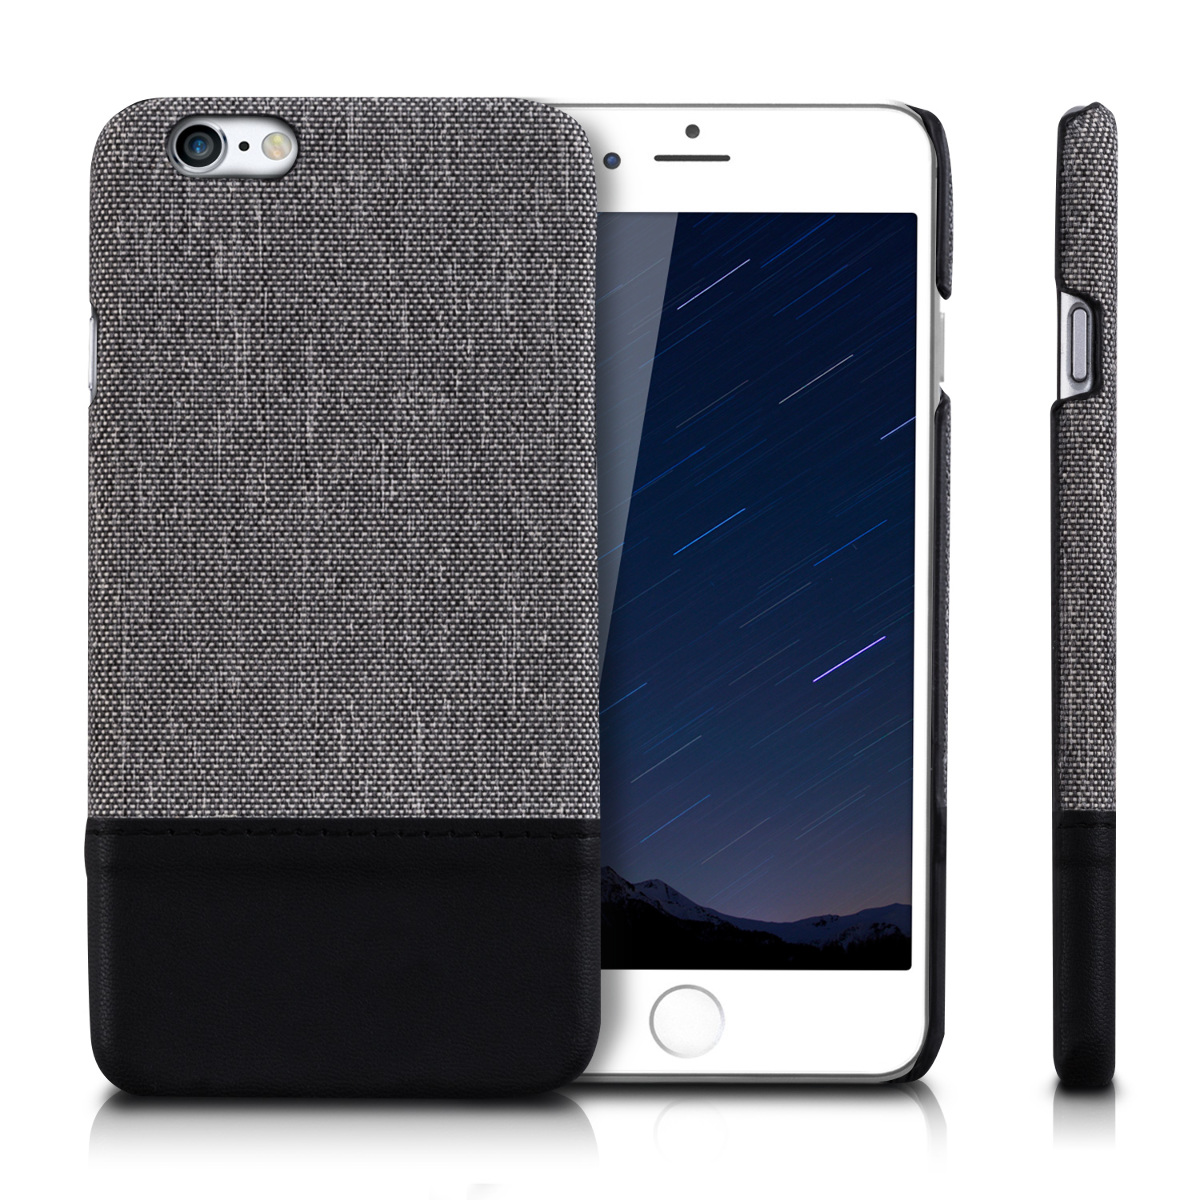 kwmobile  HARDCASE CANVAS CASE FOR APPLE IPHONE 6 / 6S BACKCOVER FABRIC BUMPER